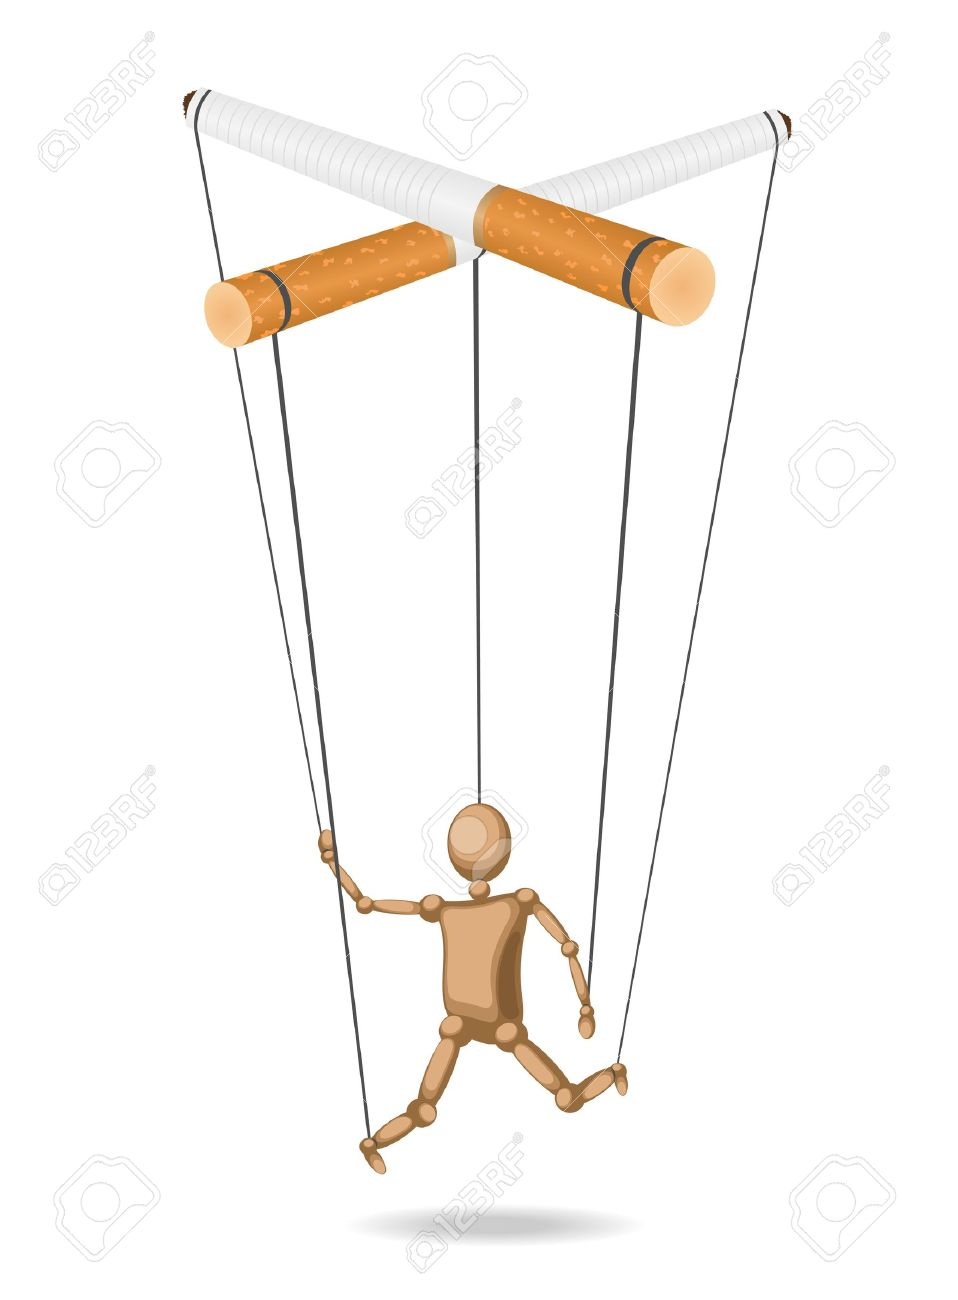 Marionette suspended for cigarettes (concept) is isolated from the background Stock Vector - 11845108